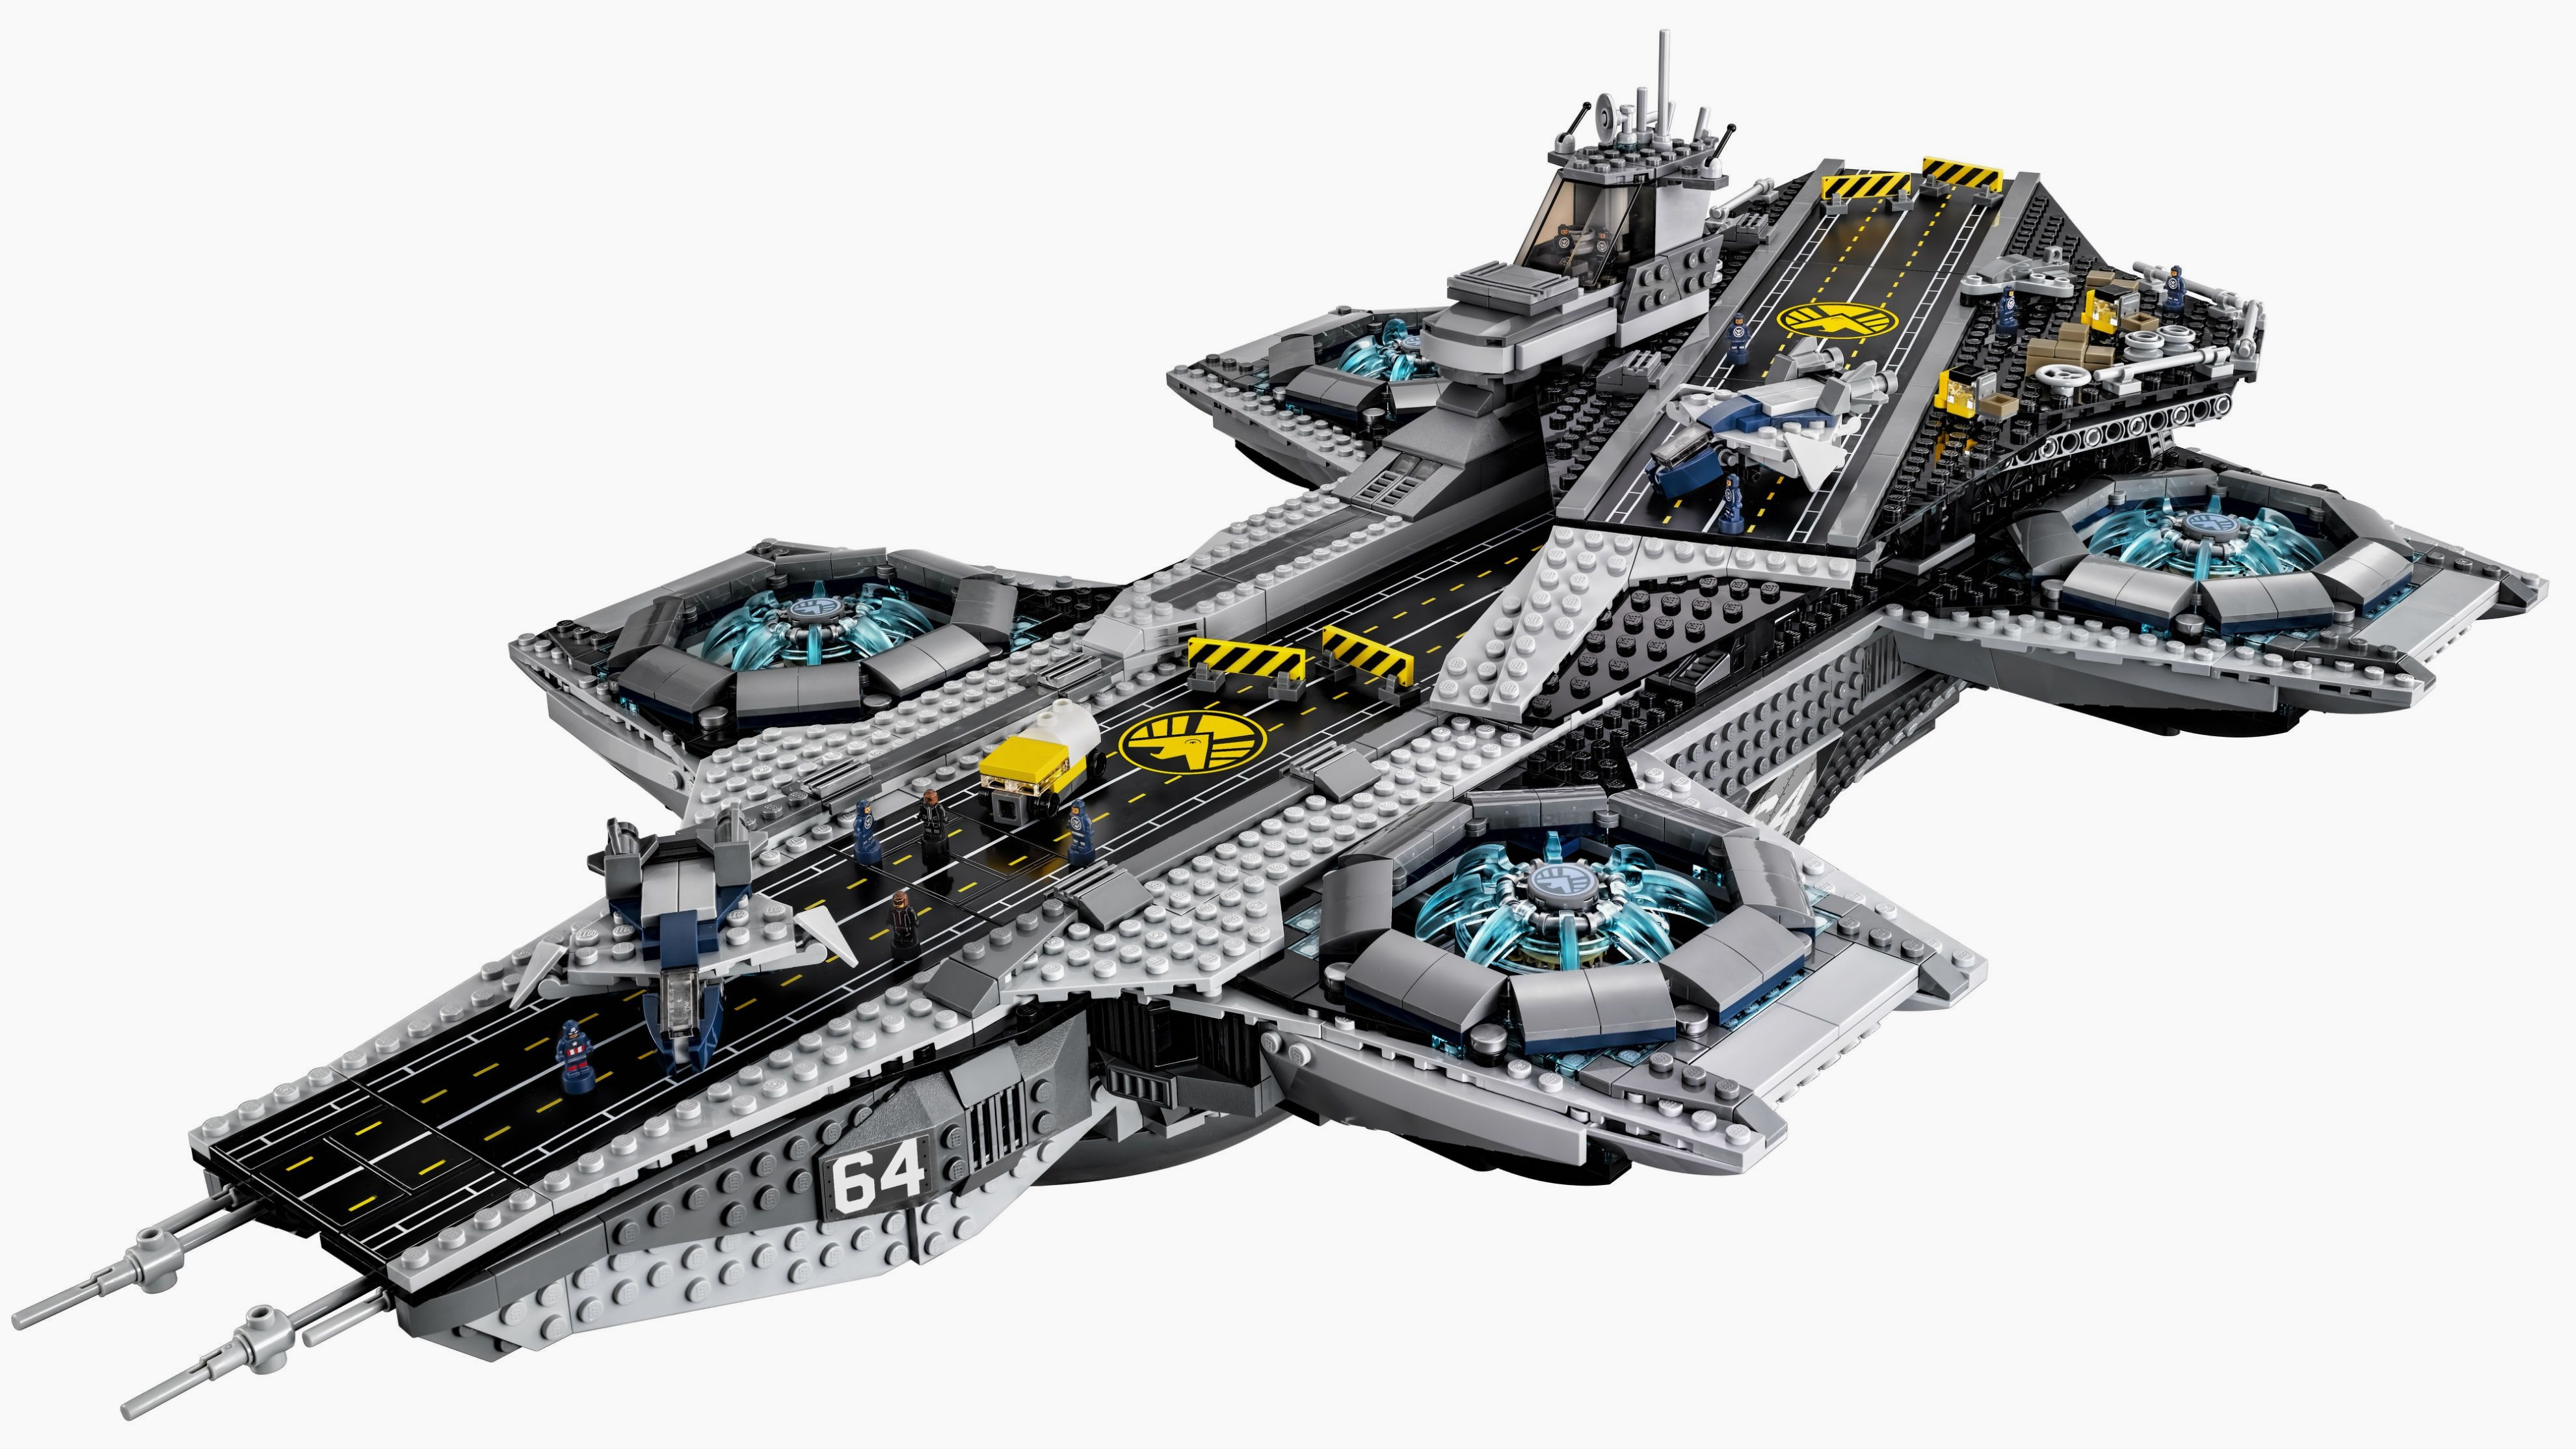 Lego Just Unveiled Its 3000 Piece Helicarrier From The Avengers No Disassemble Ideas Proposal Makes It Easy To Quartz